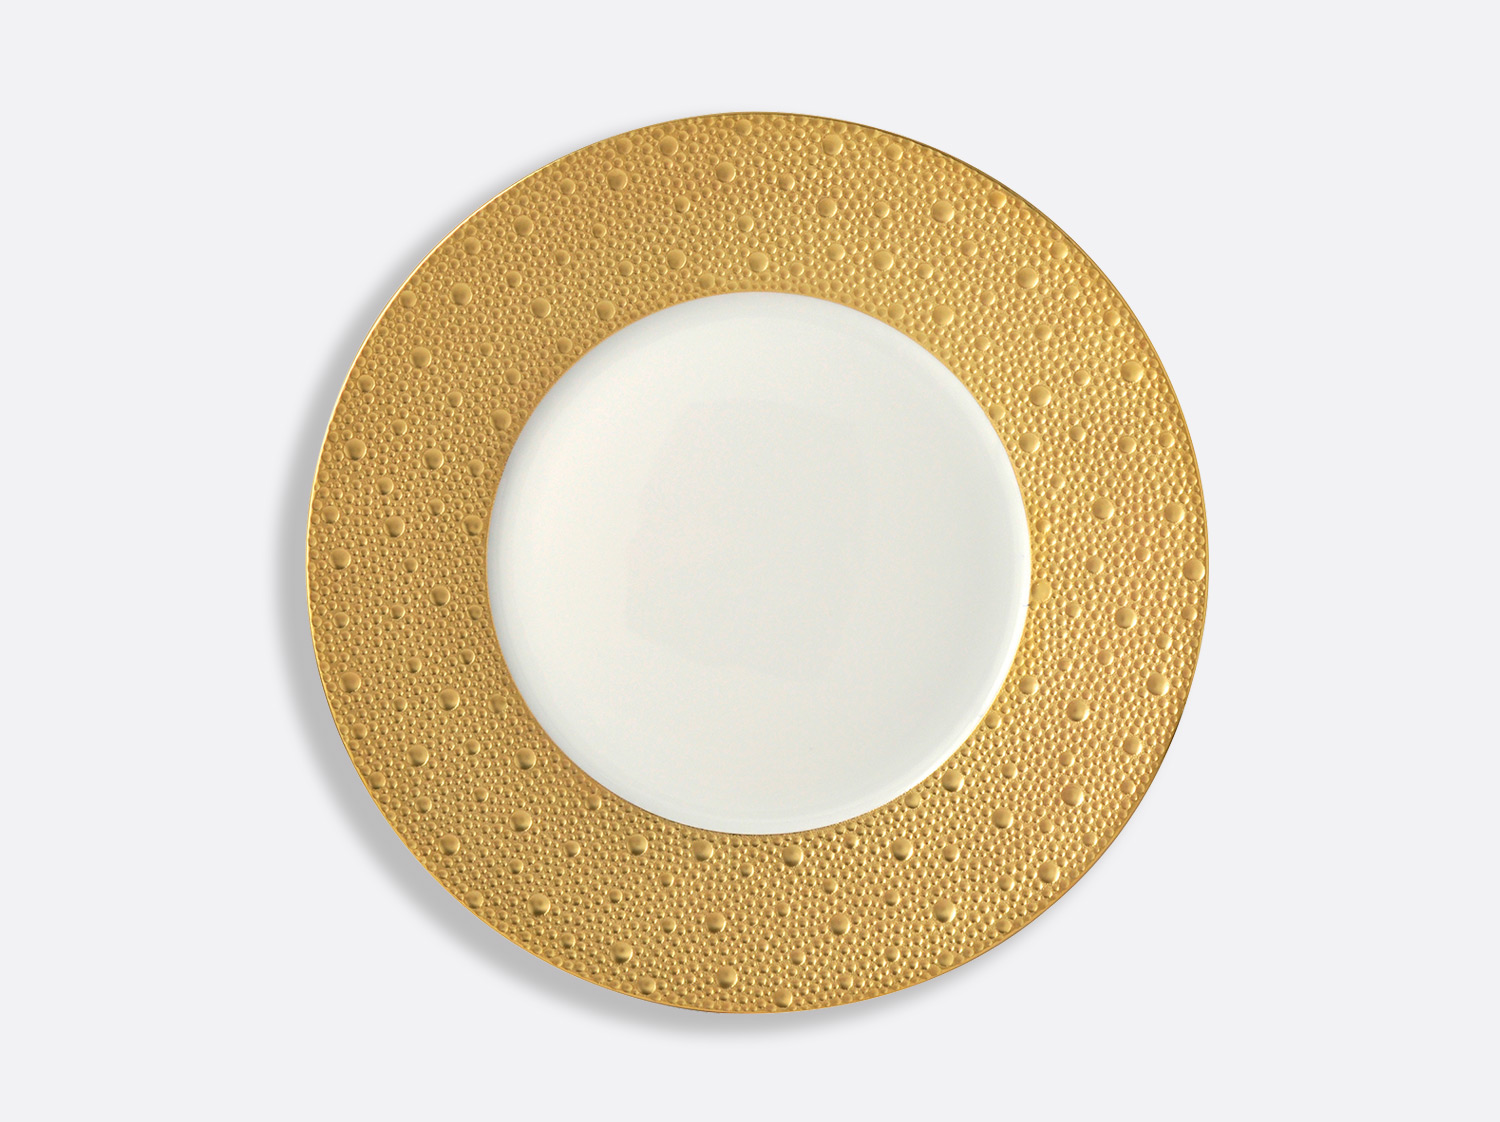 China Plate 26 cm of the collection Ecume gold | Bernardaud